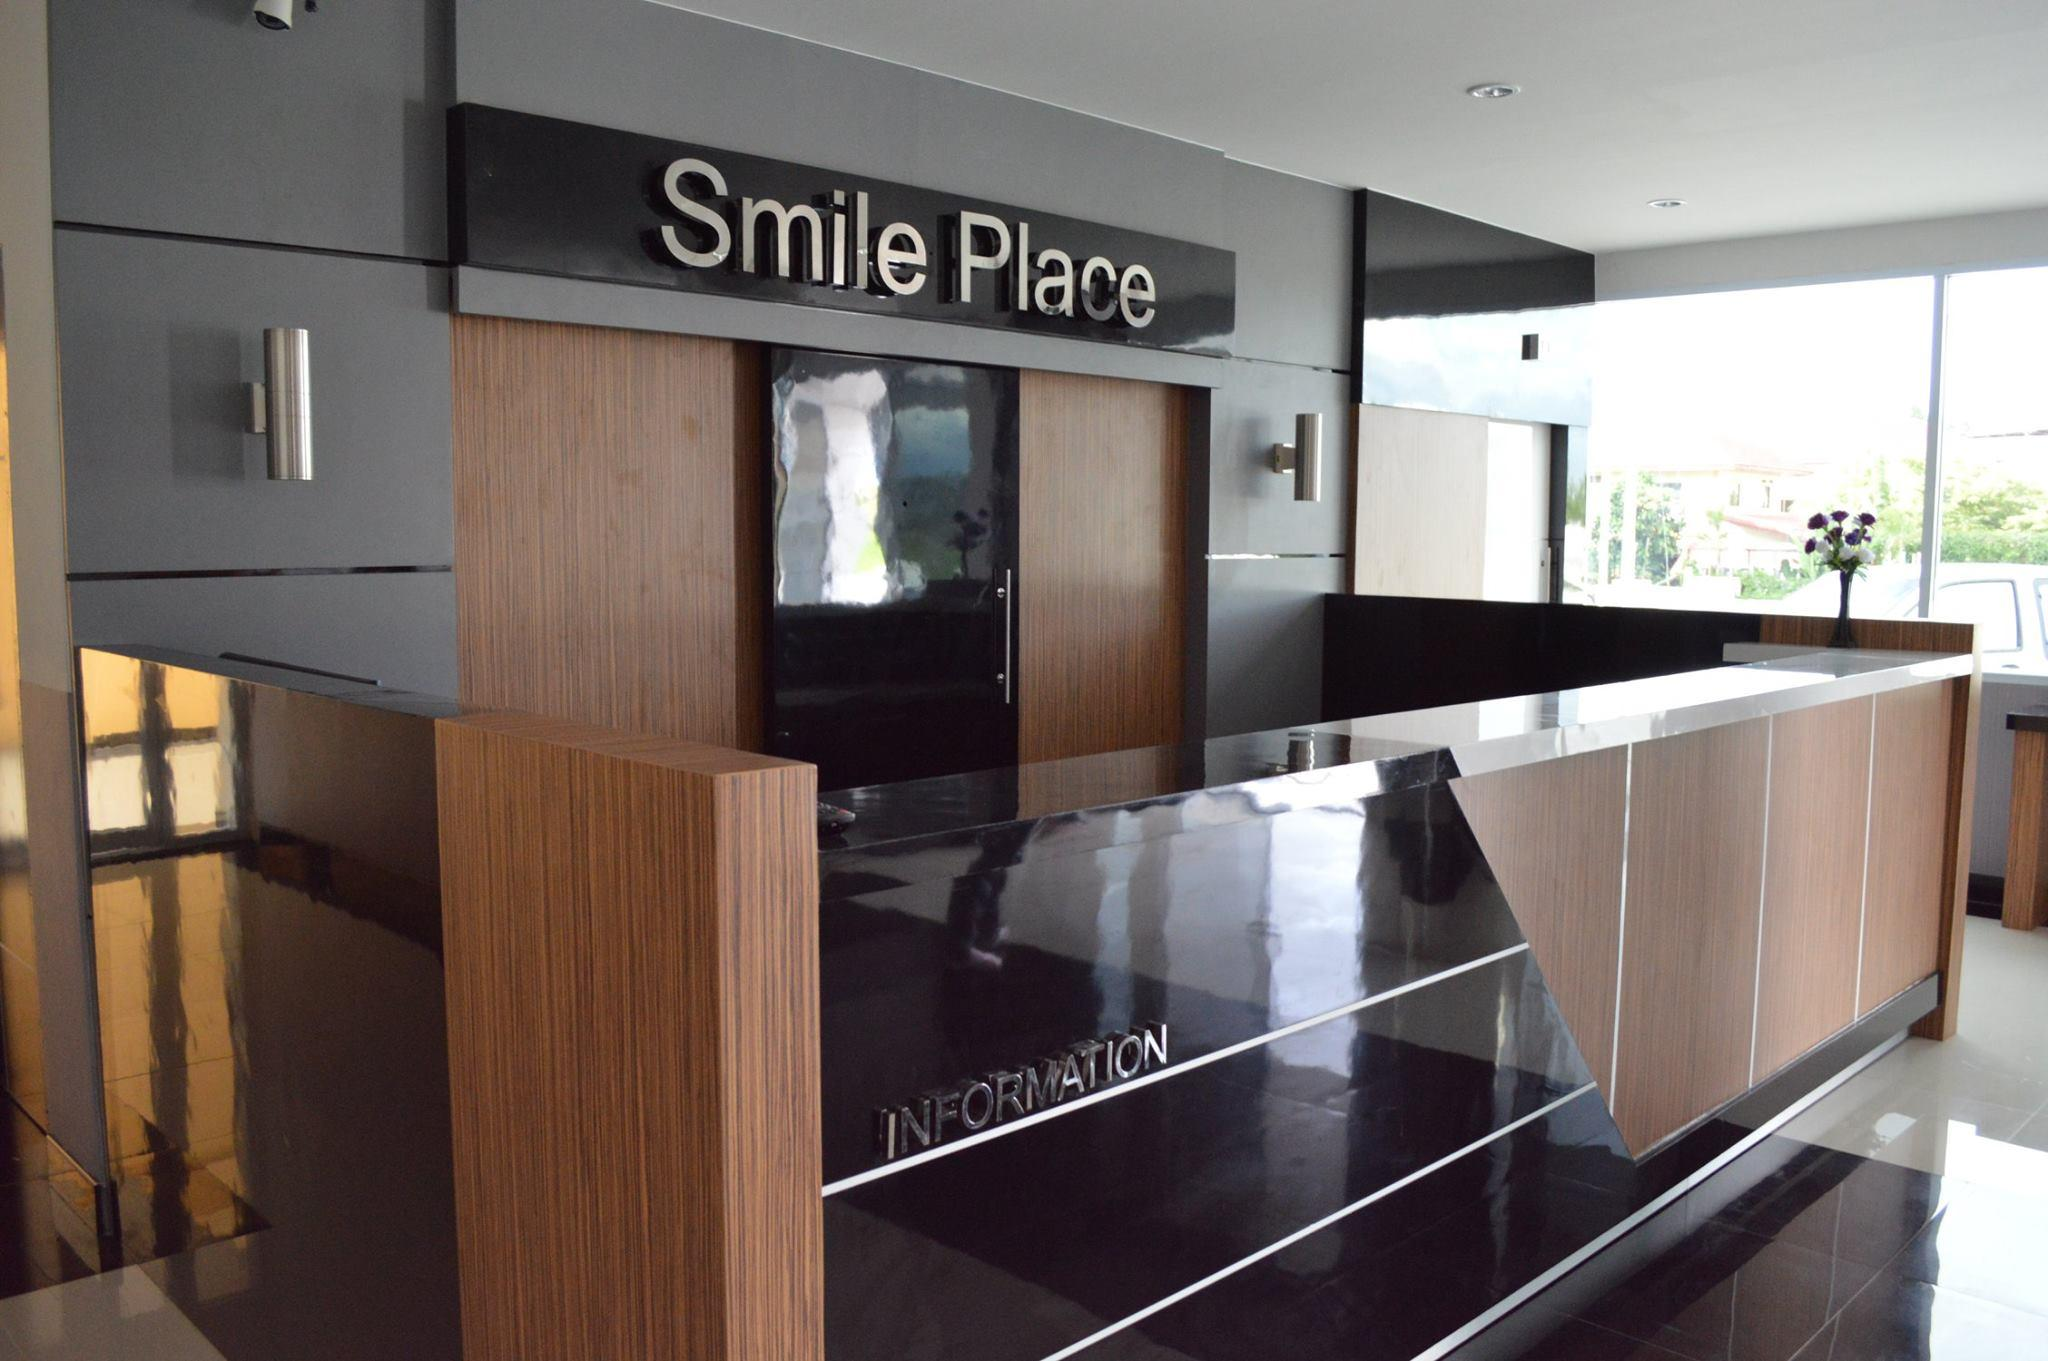 Smile Place